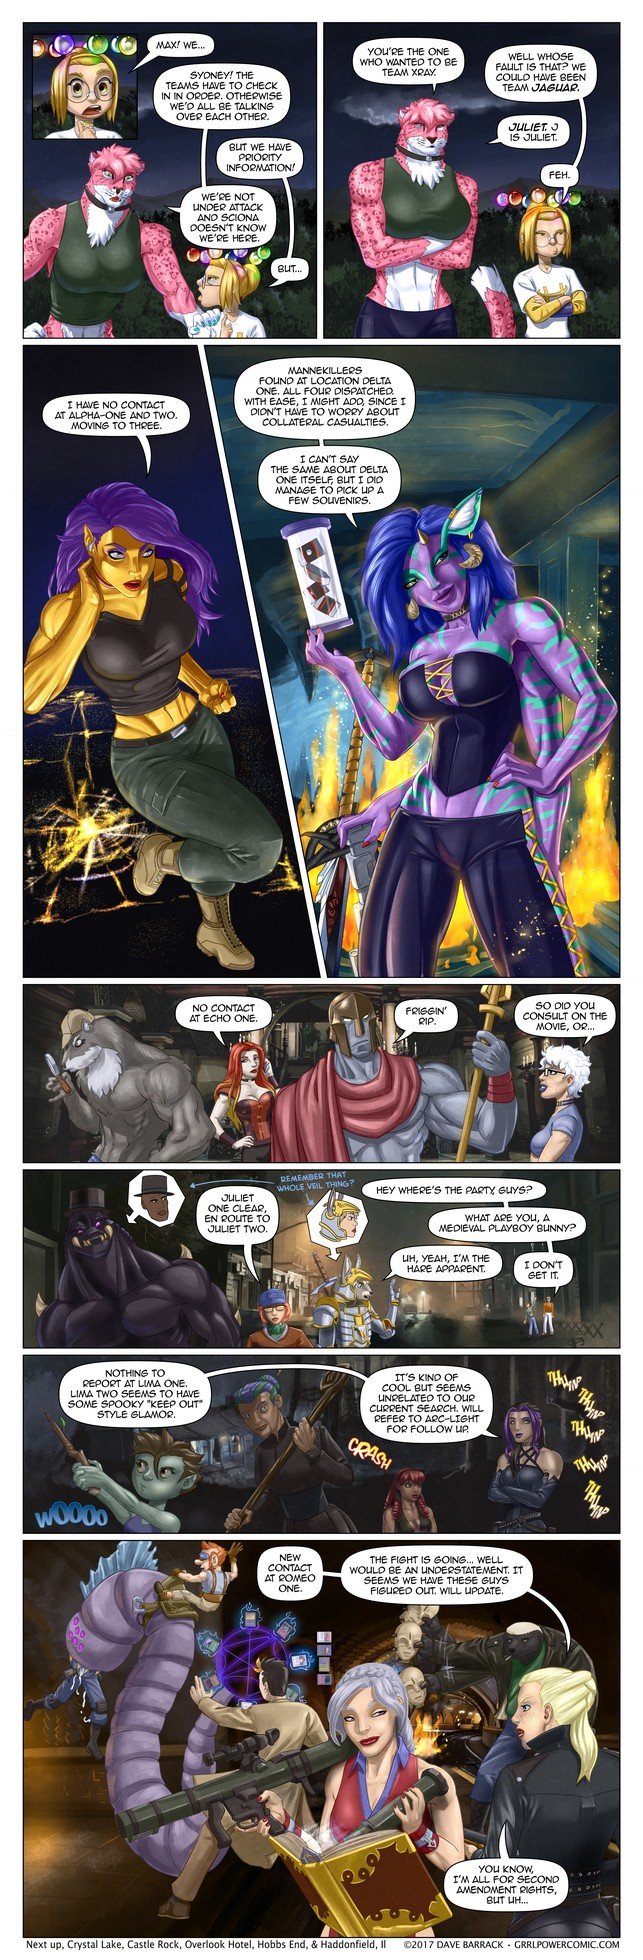 Grrl Power #505 – Team sweep